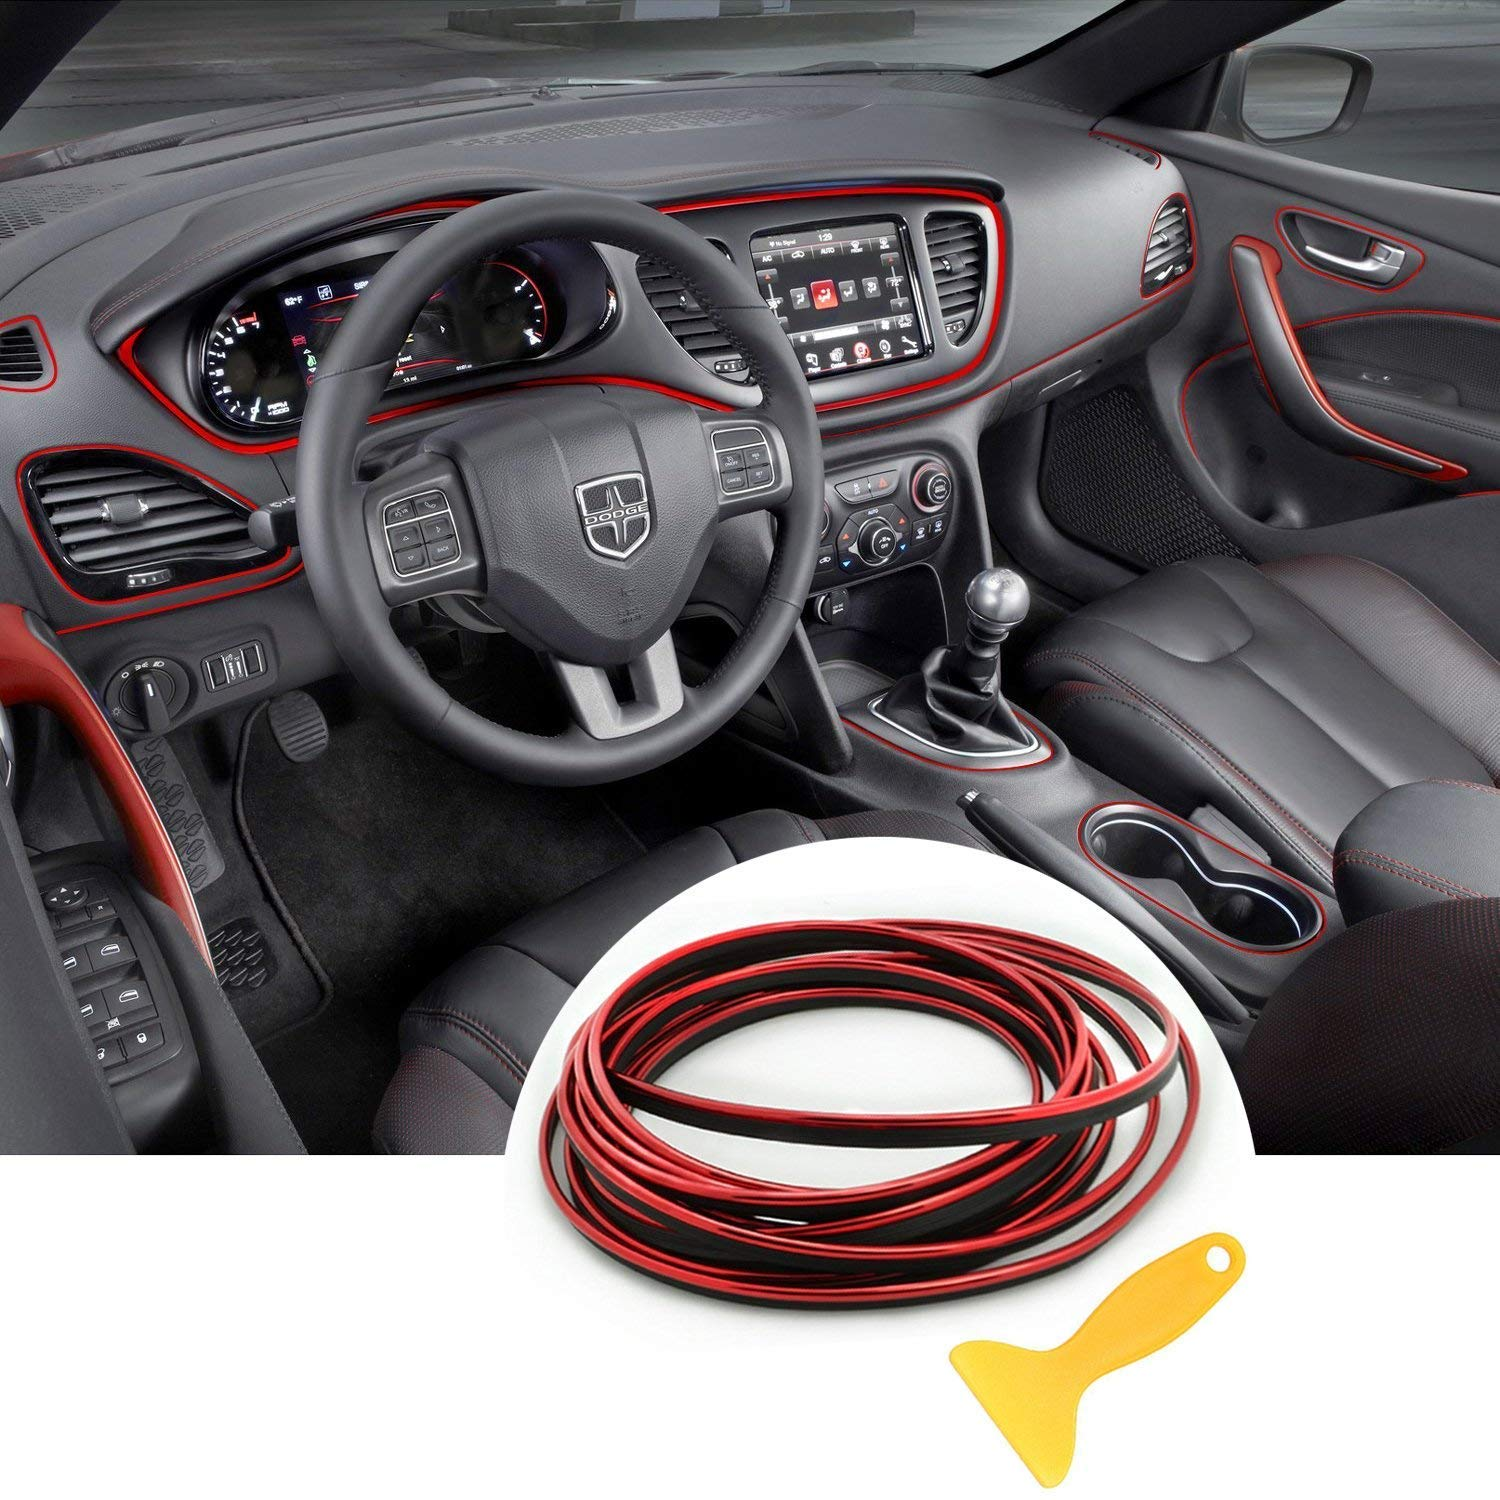 Automobile Car Filler Trim Strip Line,YY-LC Easy Push-In Removable 3D DIY Car Styling Interior Exterior Article Decoration Mouldings Trim, For Universal Car Accessory 16.4 feet,Blue YY-LCv